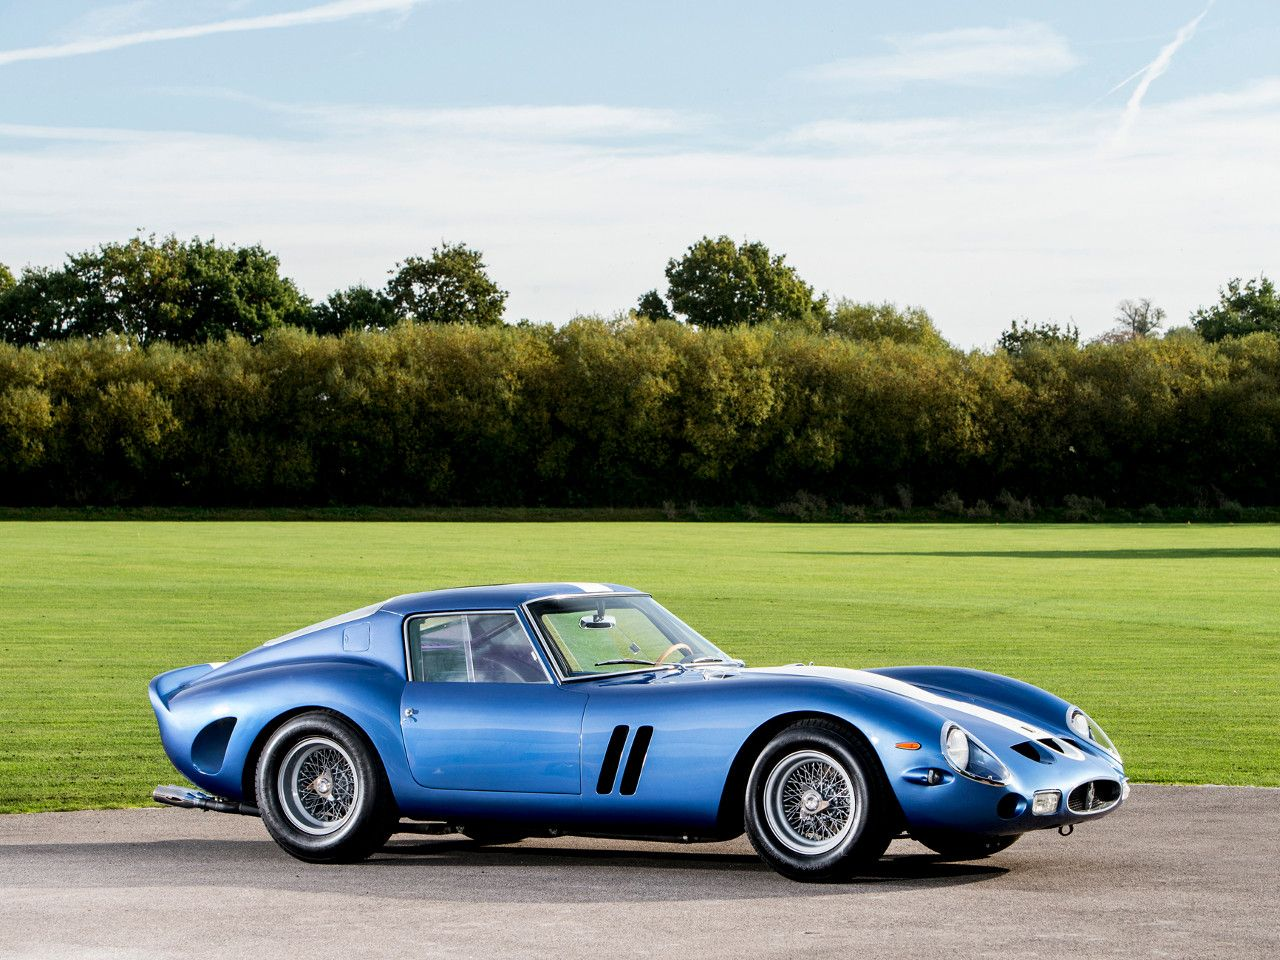 Ferrari 250 Gto For Sale At Talacrest With Images Expensive